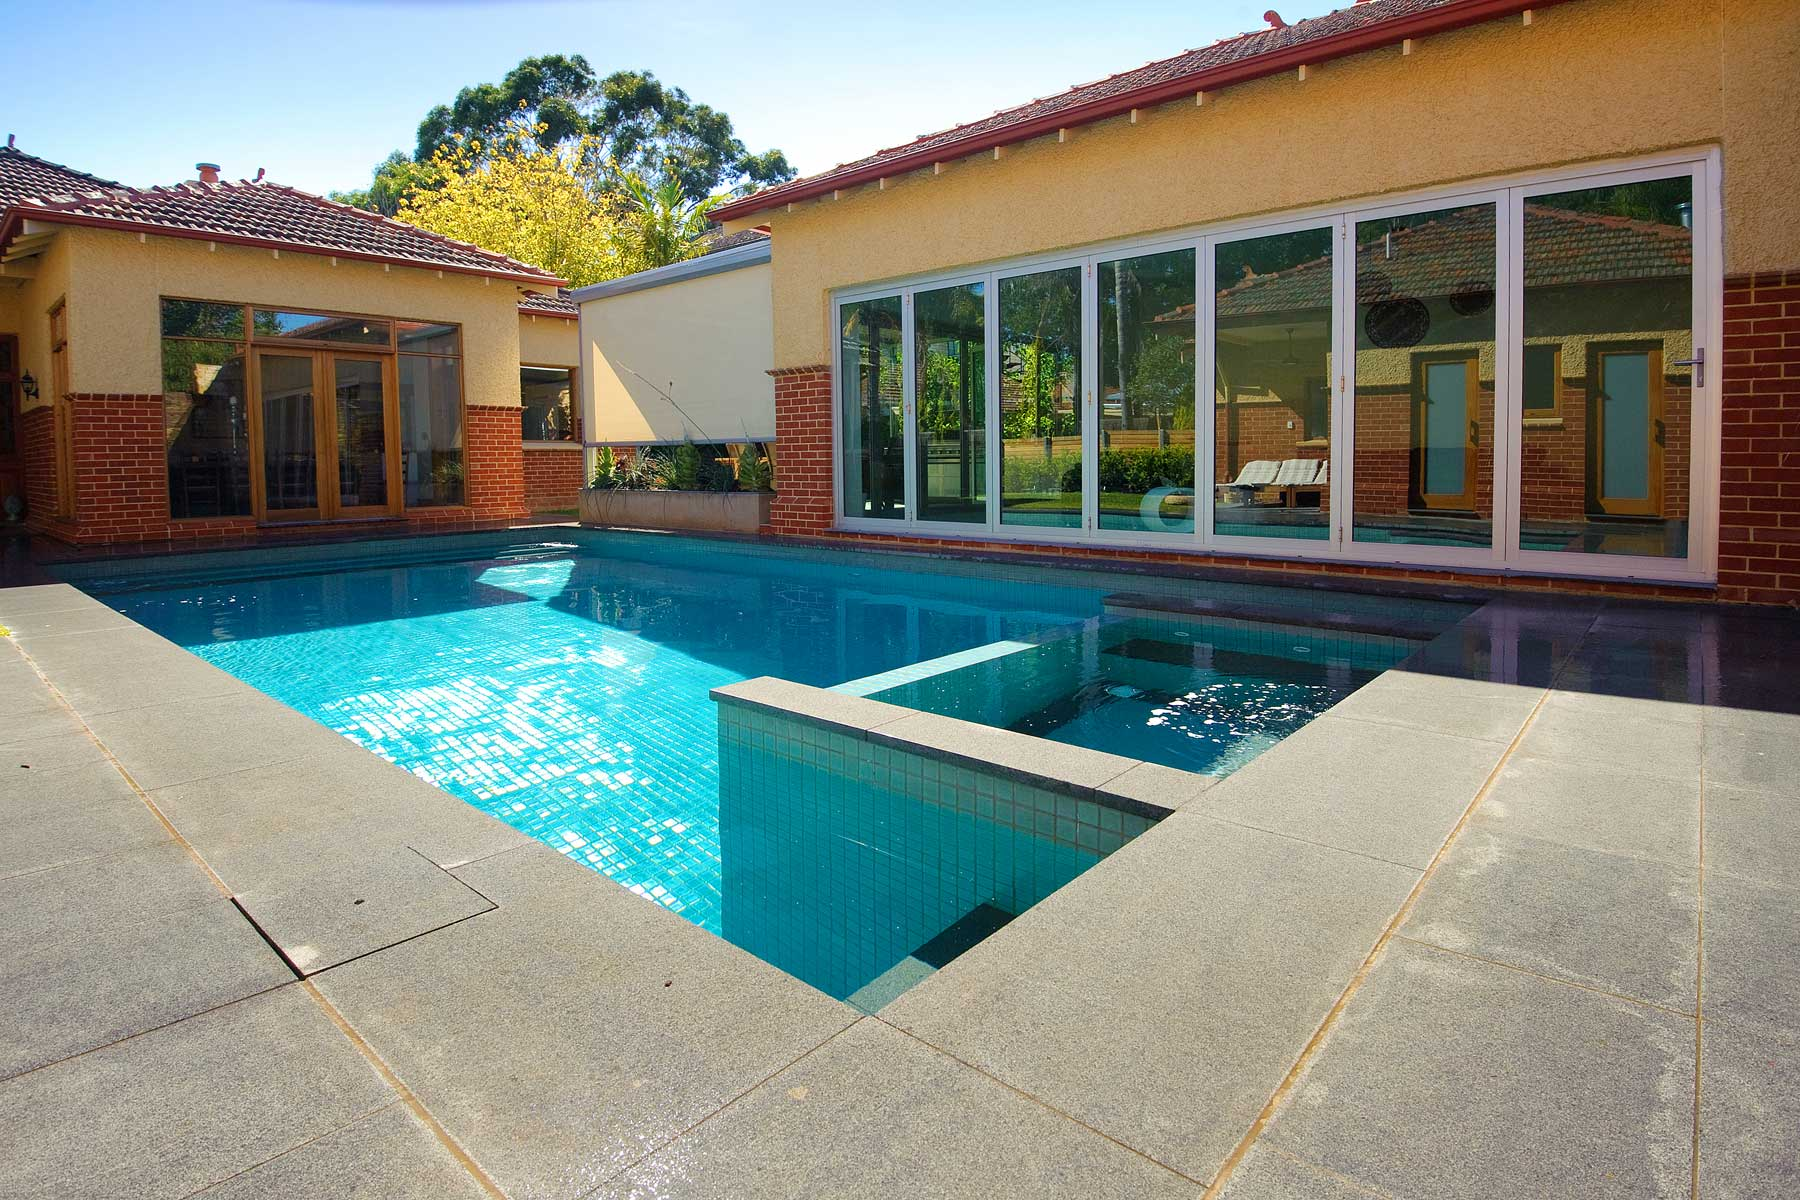 Swimming Pool Renovations by Adelaide's Leading Pool Company